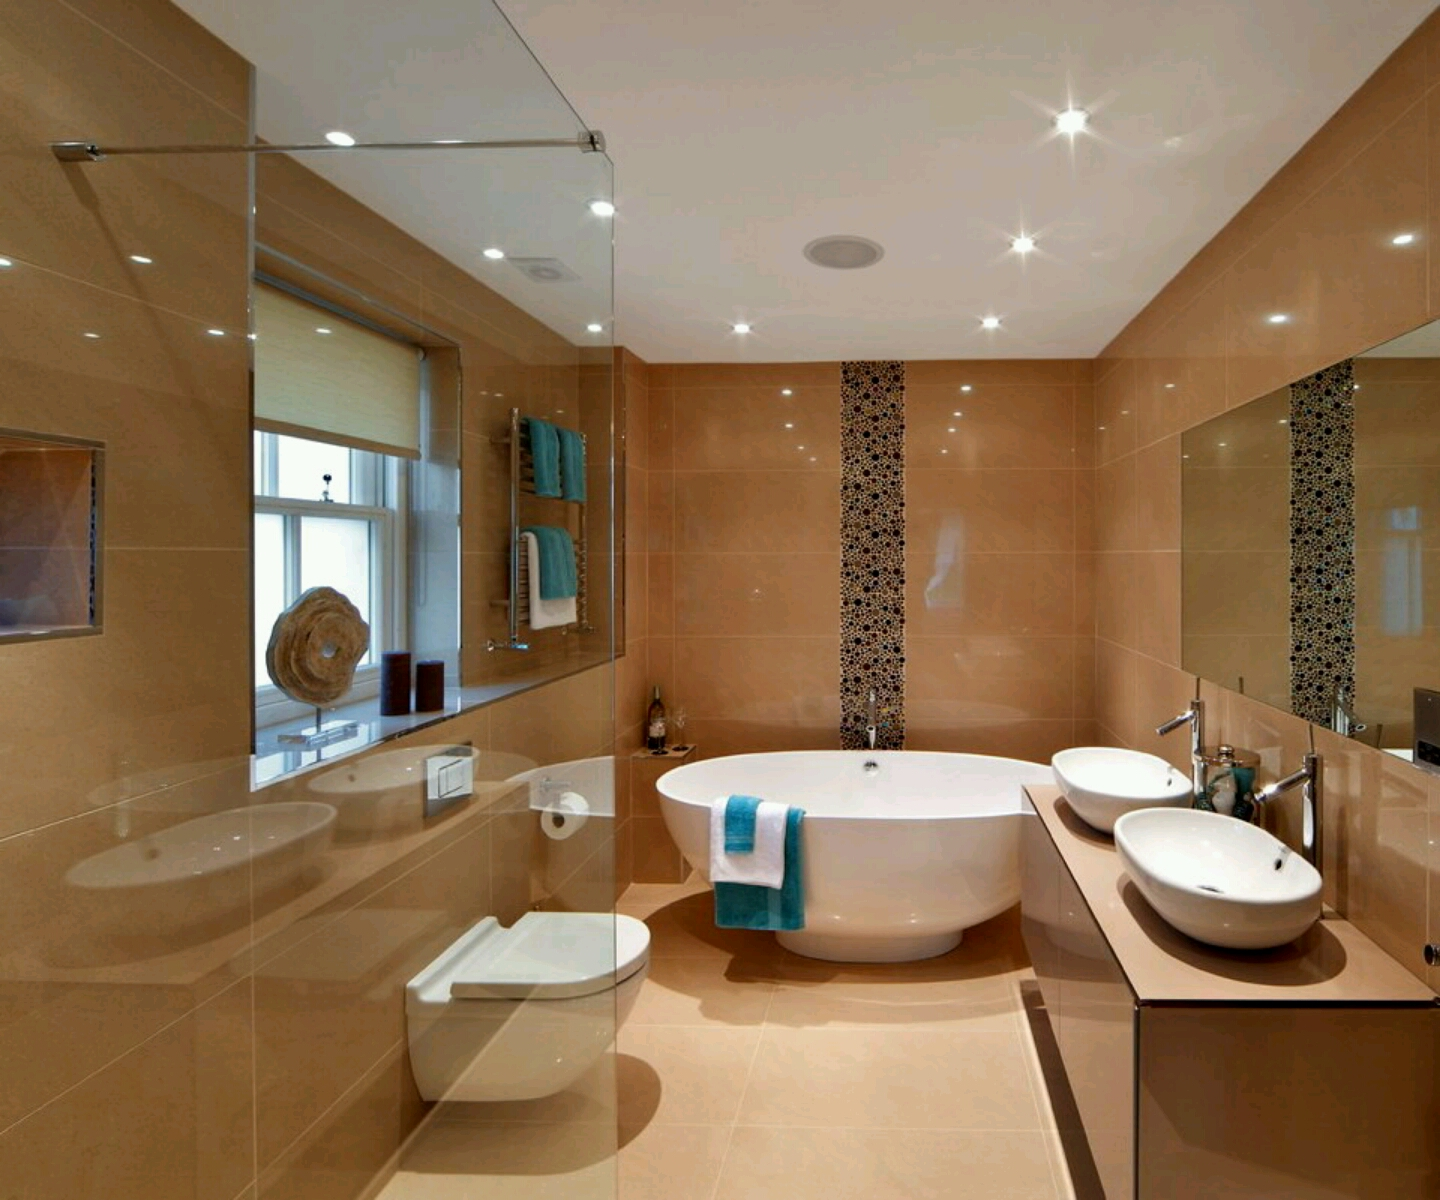 Luxury+modern+bathrooms+designs+decoration+ideas.+(4) Bathroom Ideas House To Home